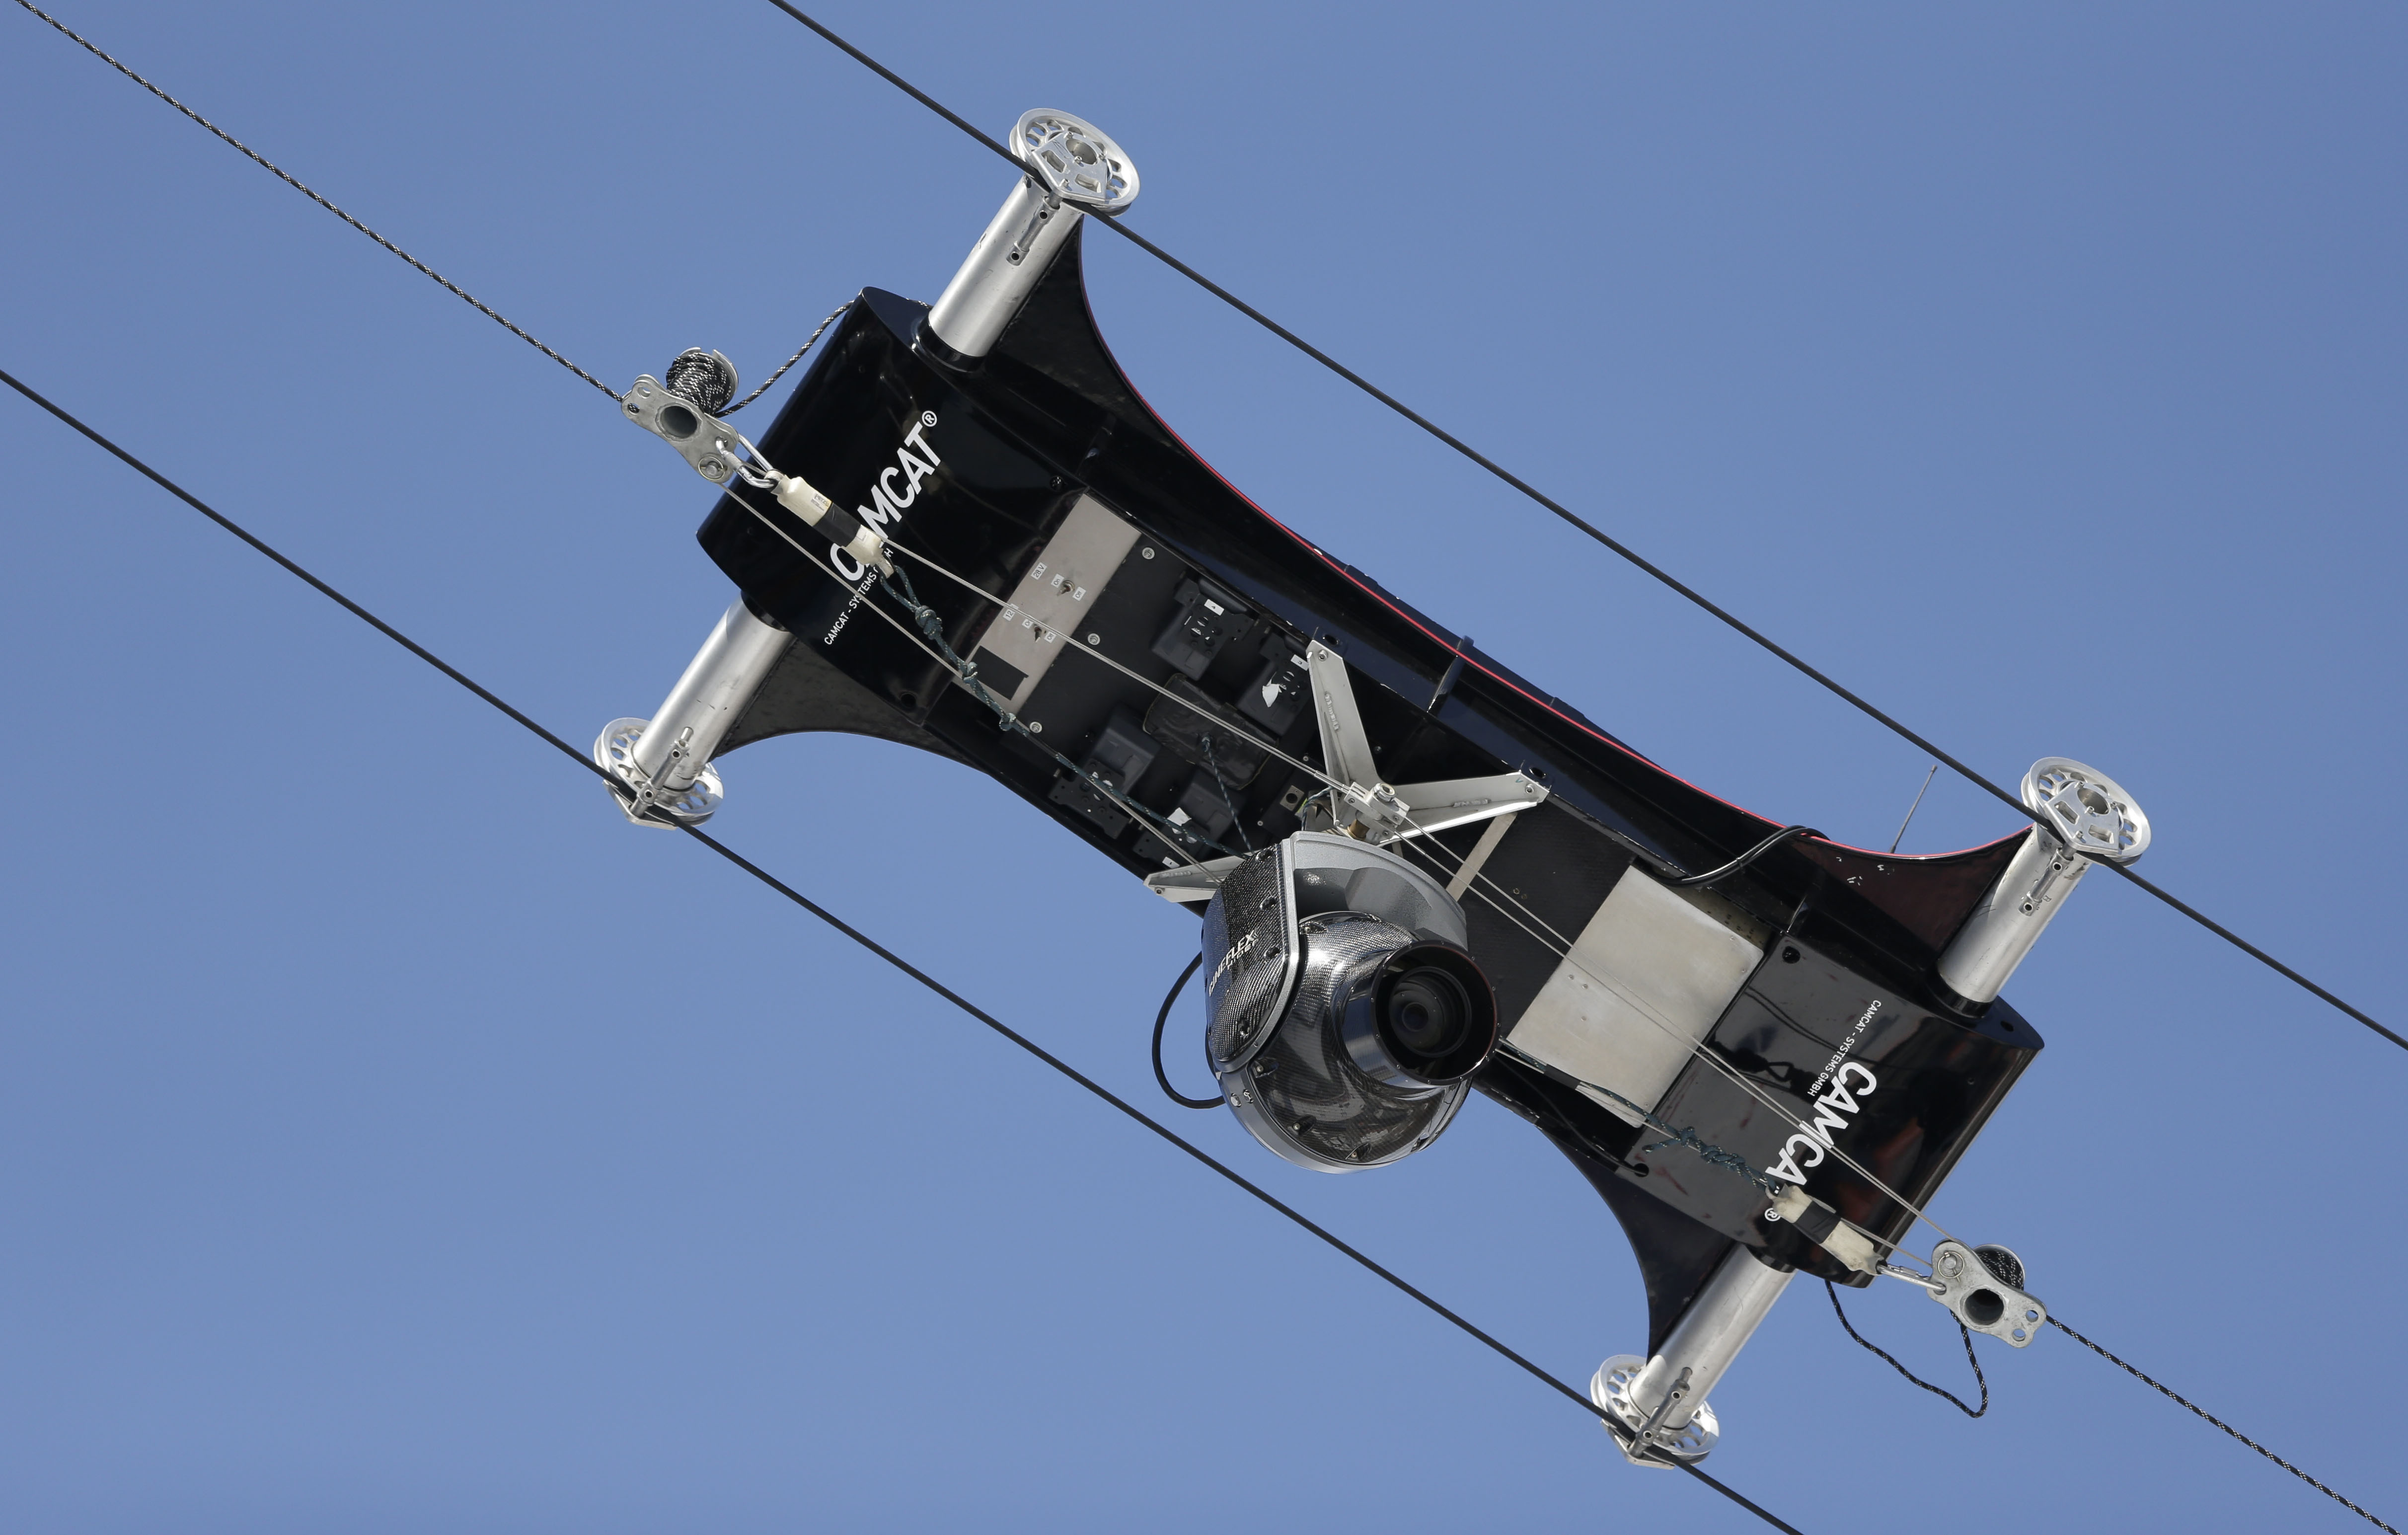 A spider camera records the Nordic combined training on Monday.